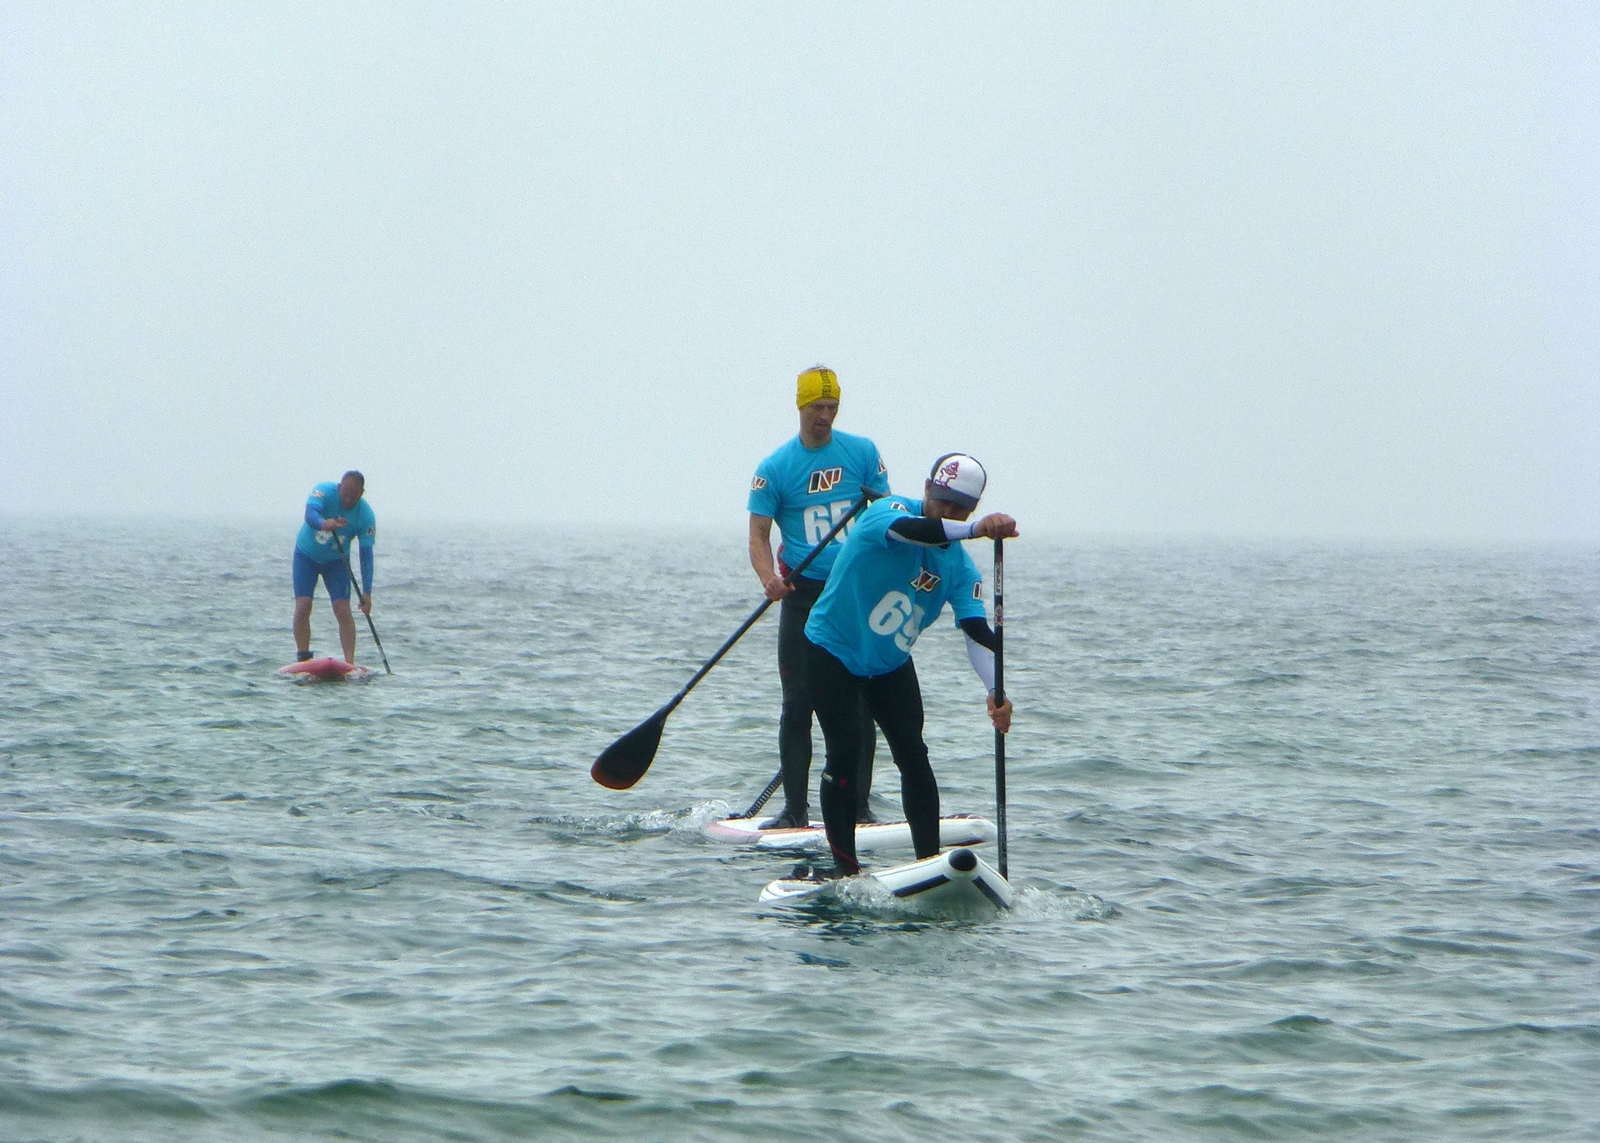 NP German SUP Trophy Wustrow 04